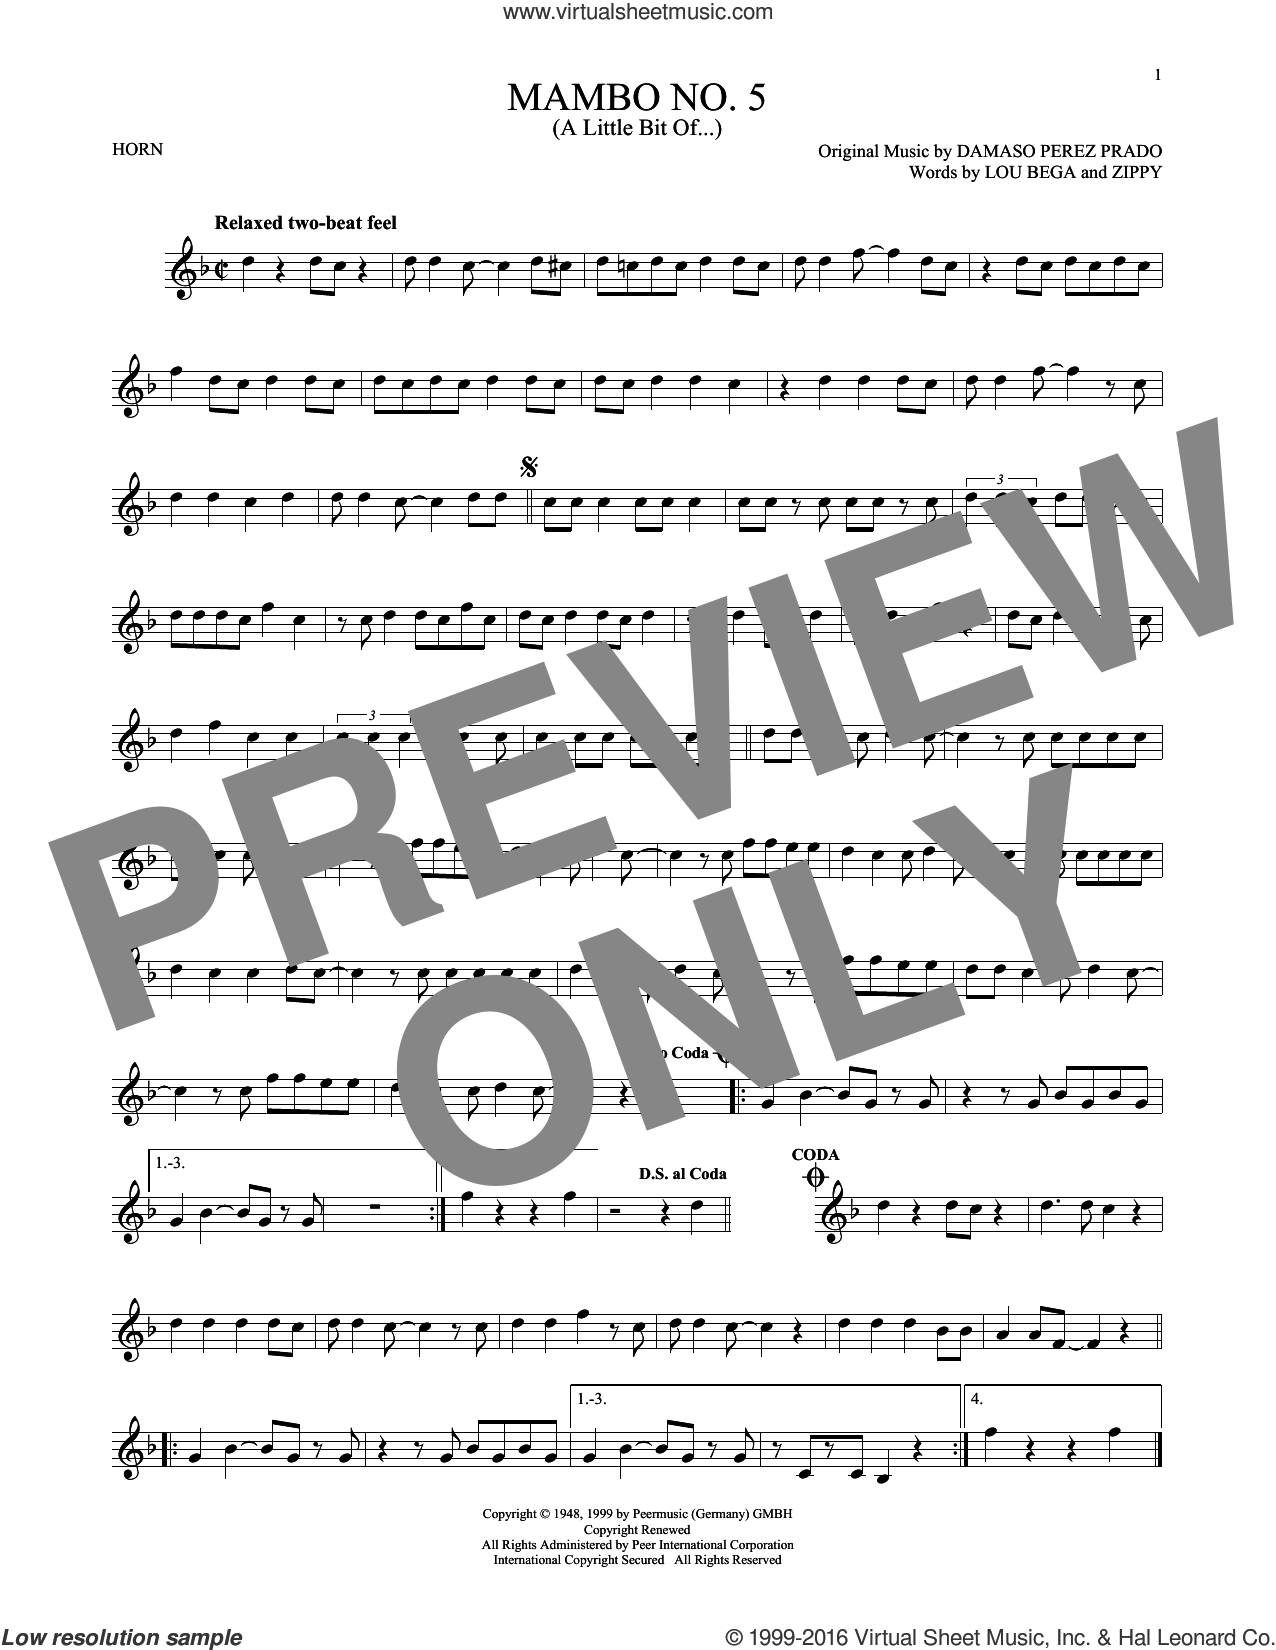 Mambo No. 5 (A Little Bit Of...) sheet music for horn solo by Lou Bega, Damaso Perez Prado and Zippy, intermediate skill level